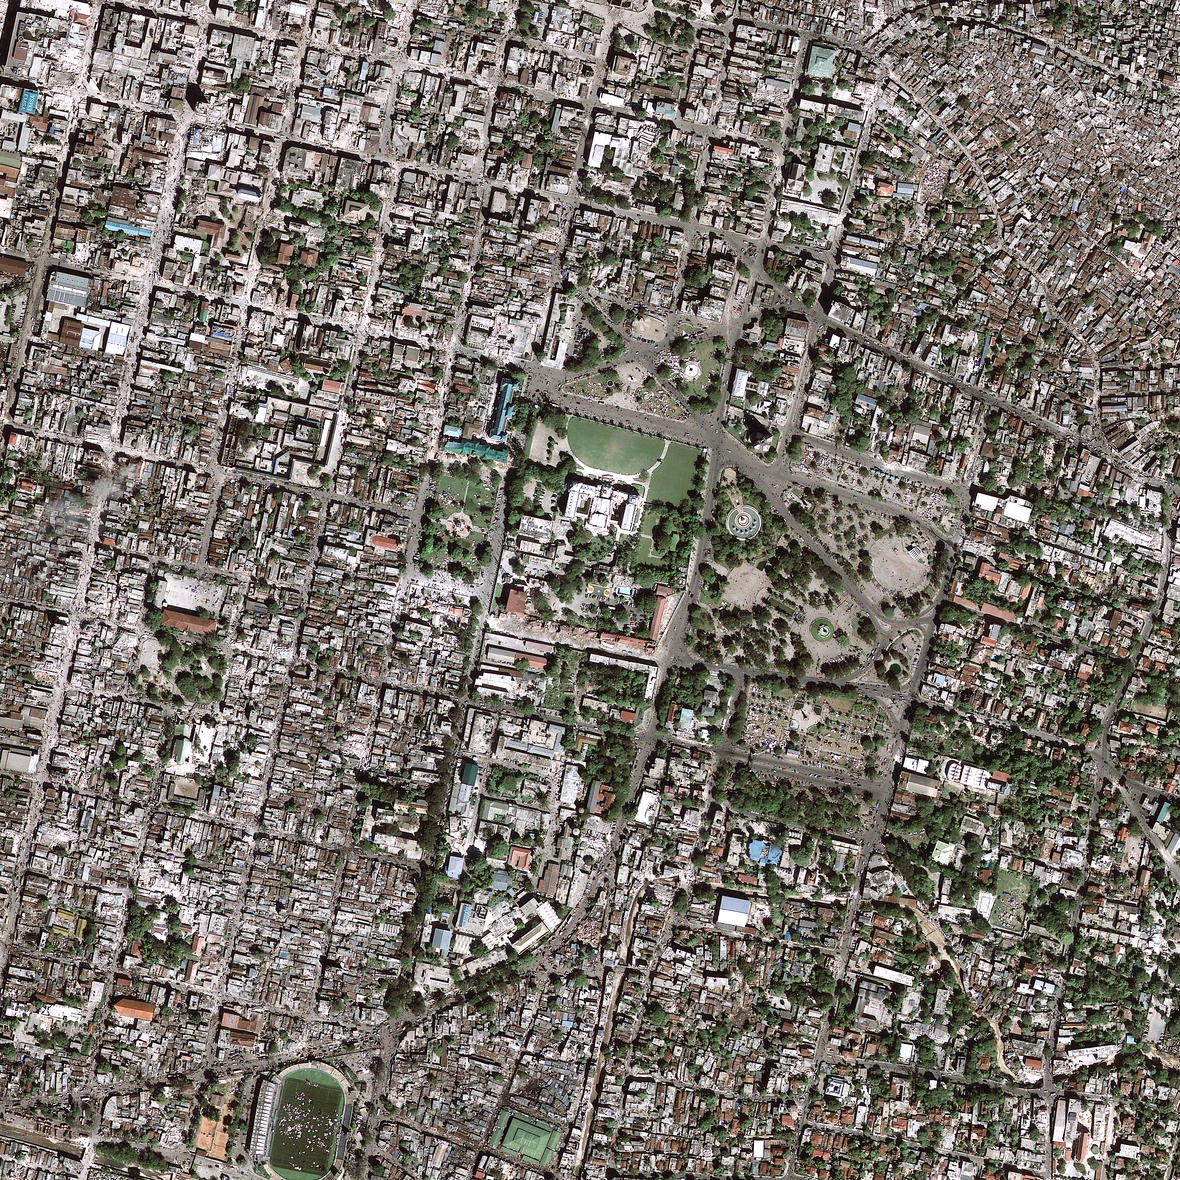 example_images/GeoEye_After011310.jpg